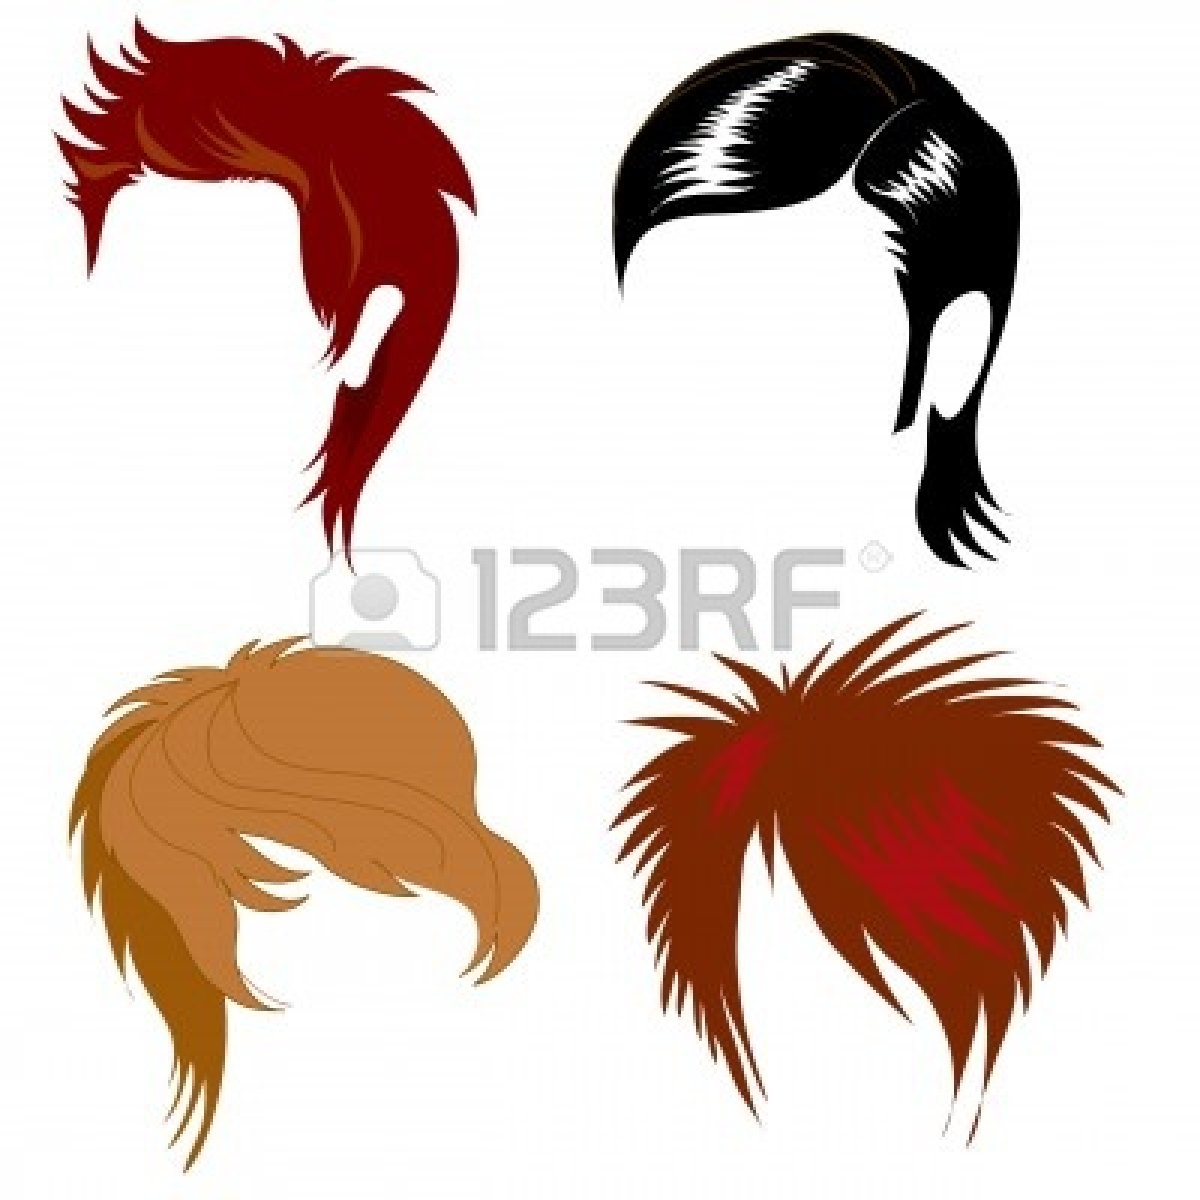 Photos clipart hairstyle #9